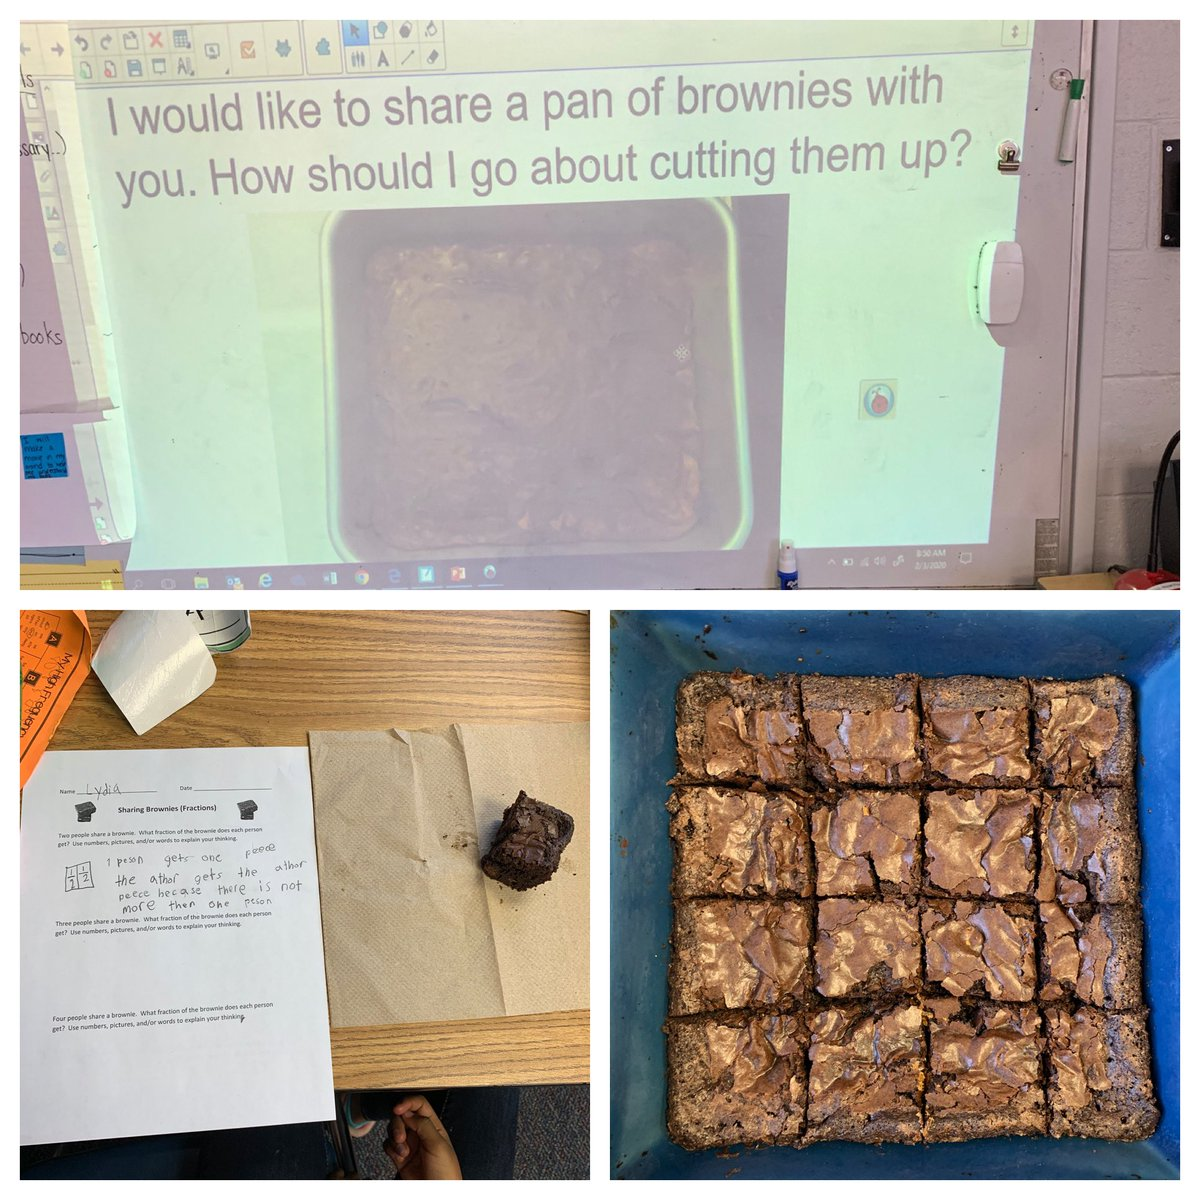 Our fraction unit is off to a delicious start today! <a target='_blank' href='http://twitter.com/CampbellAPS'>@CampbellAPS</a> <a target='_blank' href='https://t.co/iirpRgsmWU'>https://t.co/iirpRgsmWU</a>